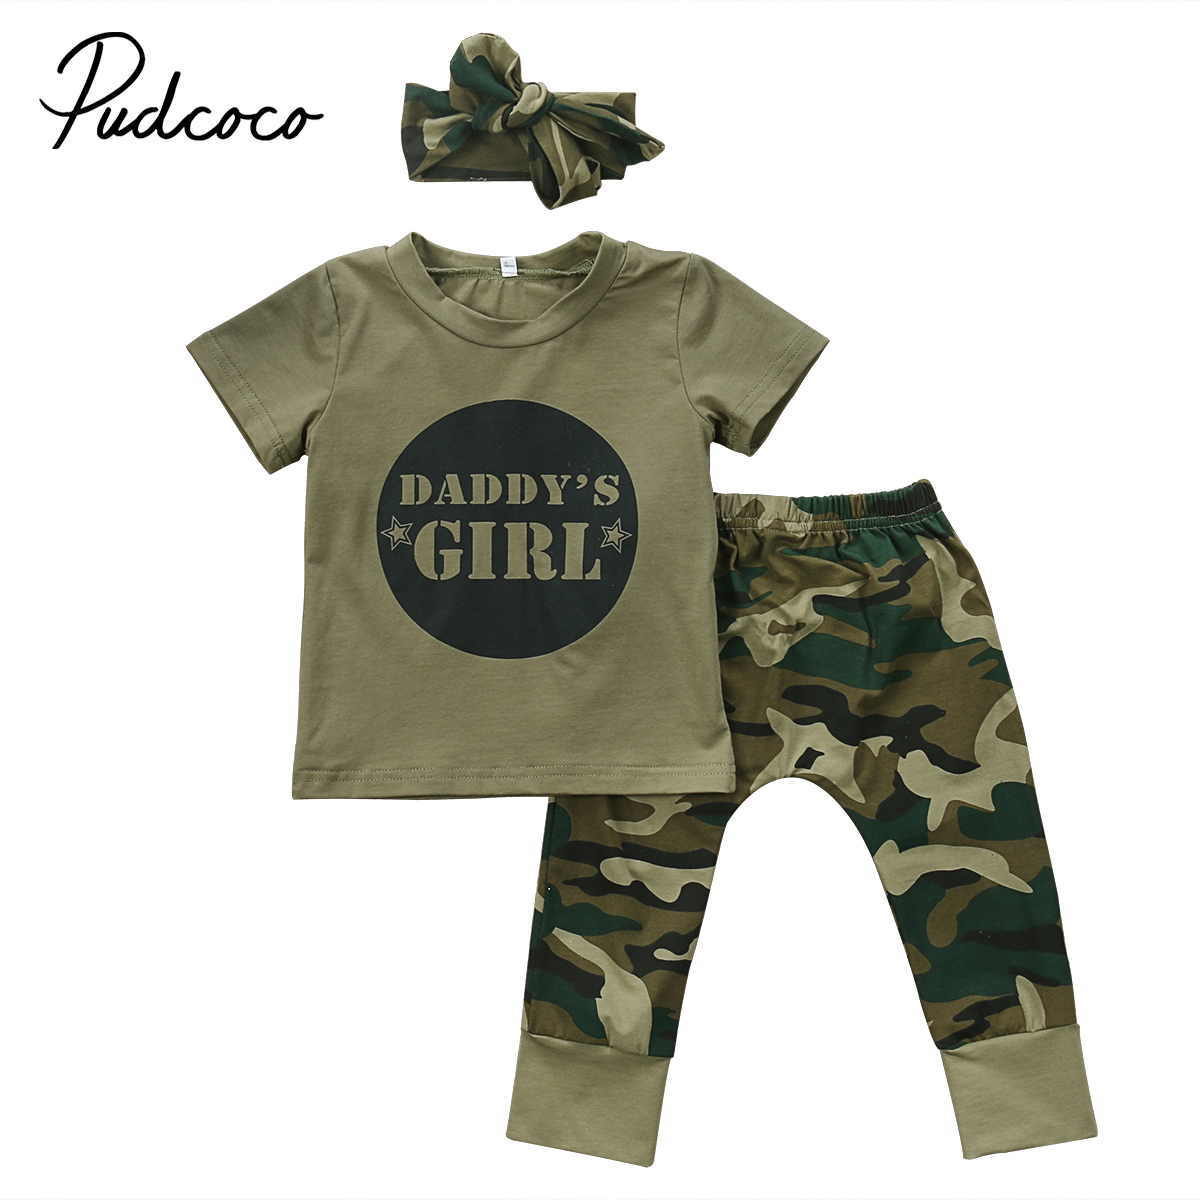 Summer Newborn Baby Boy Girls Camouflage T-shirt Tops+Pants Outfits Set Clothes Army Green Children Letters Print Clothing 0-24M 2018 spring newborn baby boy clothes gentleman baby boy long sleeved plaid shirt vest pants boy outfits shirt pants set